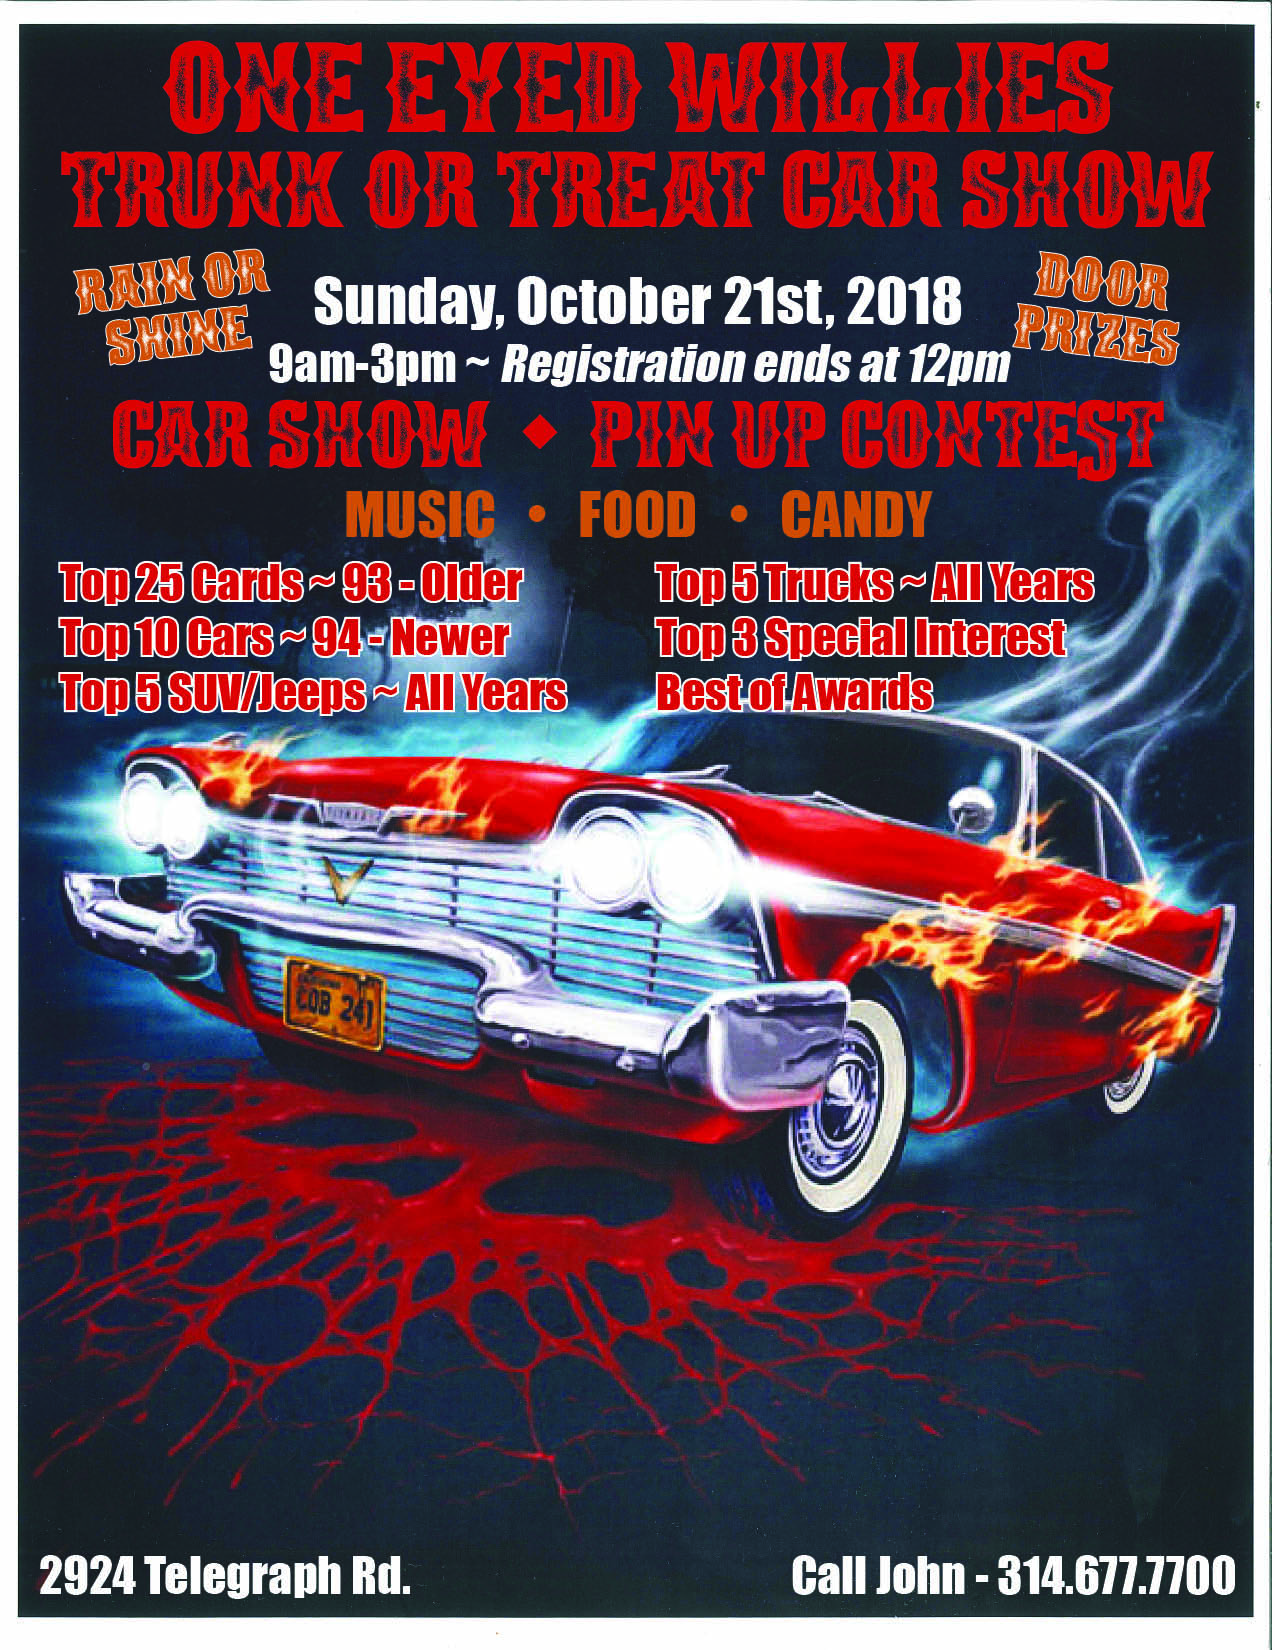 Mo IL Car Shows - Car show in branson mo 2018